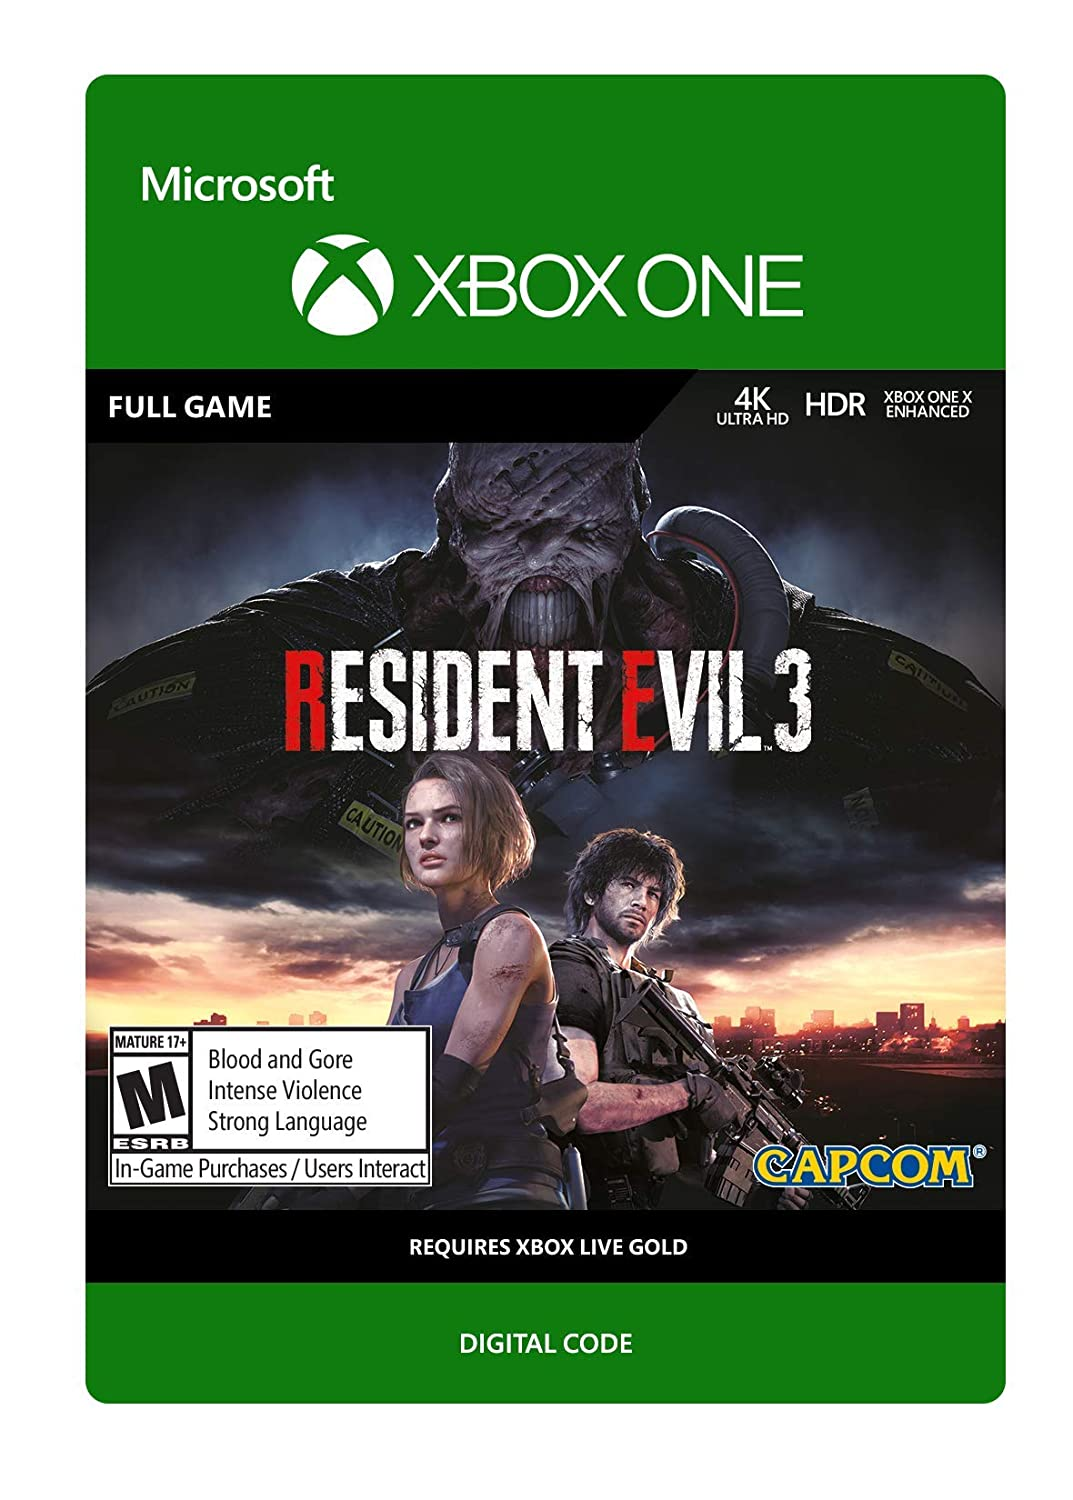 This digital game code for <em>Resident Evil 3</em> on the Xbox One costs $60 whether you buy it from Microsoft or a retailer.